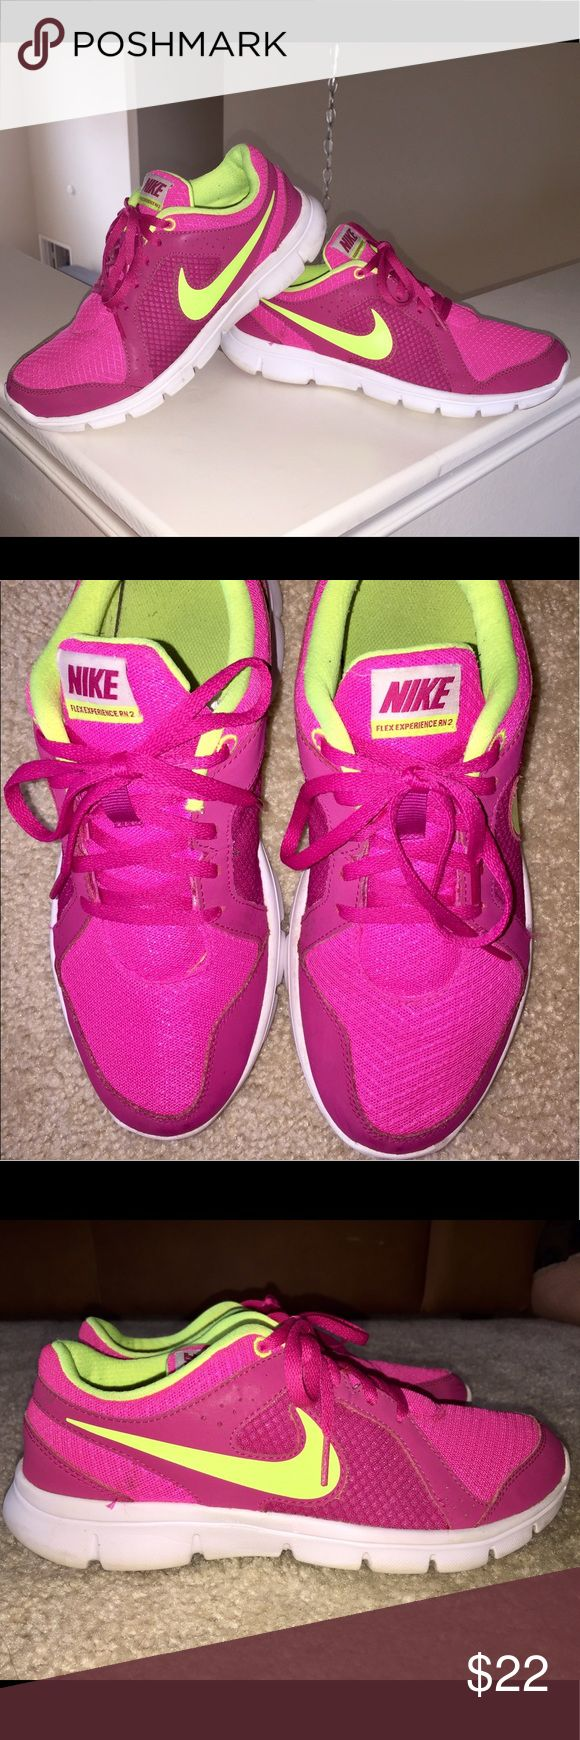 Cute Nike Tennis Shoes Pink & Neon yellow Nike Tennis Shoes. These shoes will add a pop of color to any of your actual be wear. These are labeled as size 6.5Y which is a woman's size 7.5 (please see size chart pic). Nike Shoes Athletic Shoes